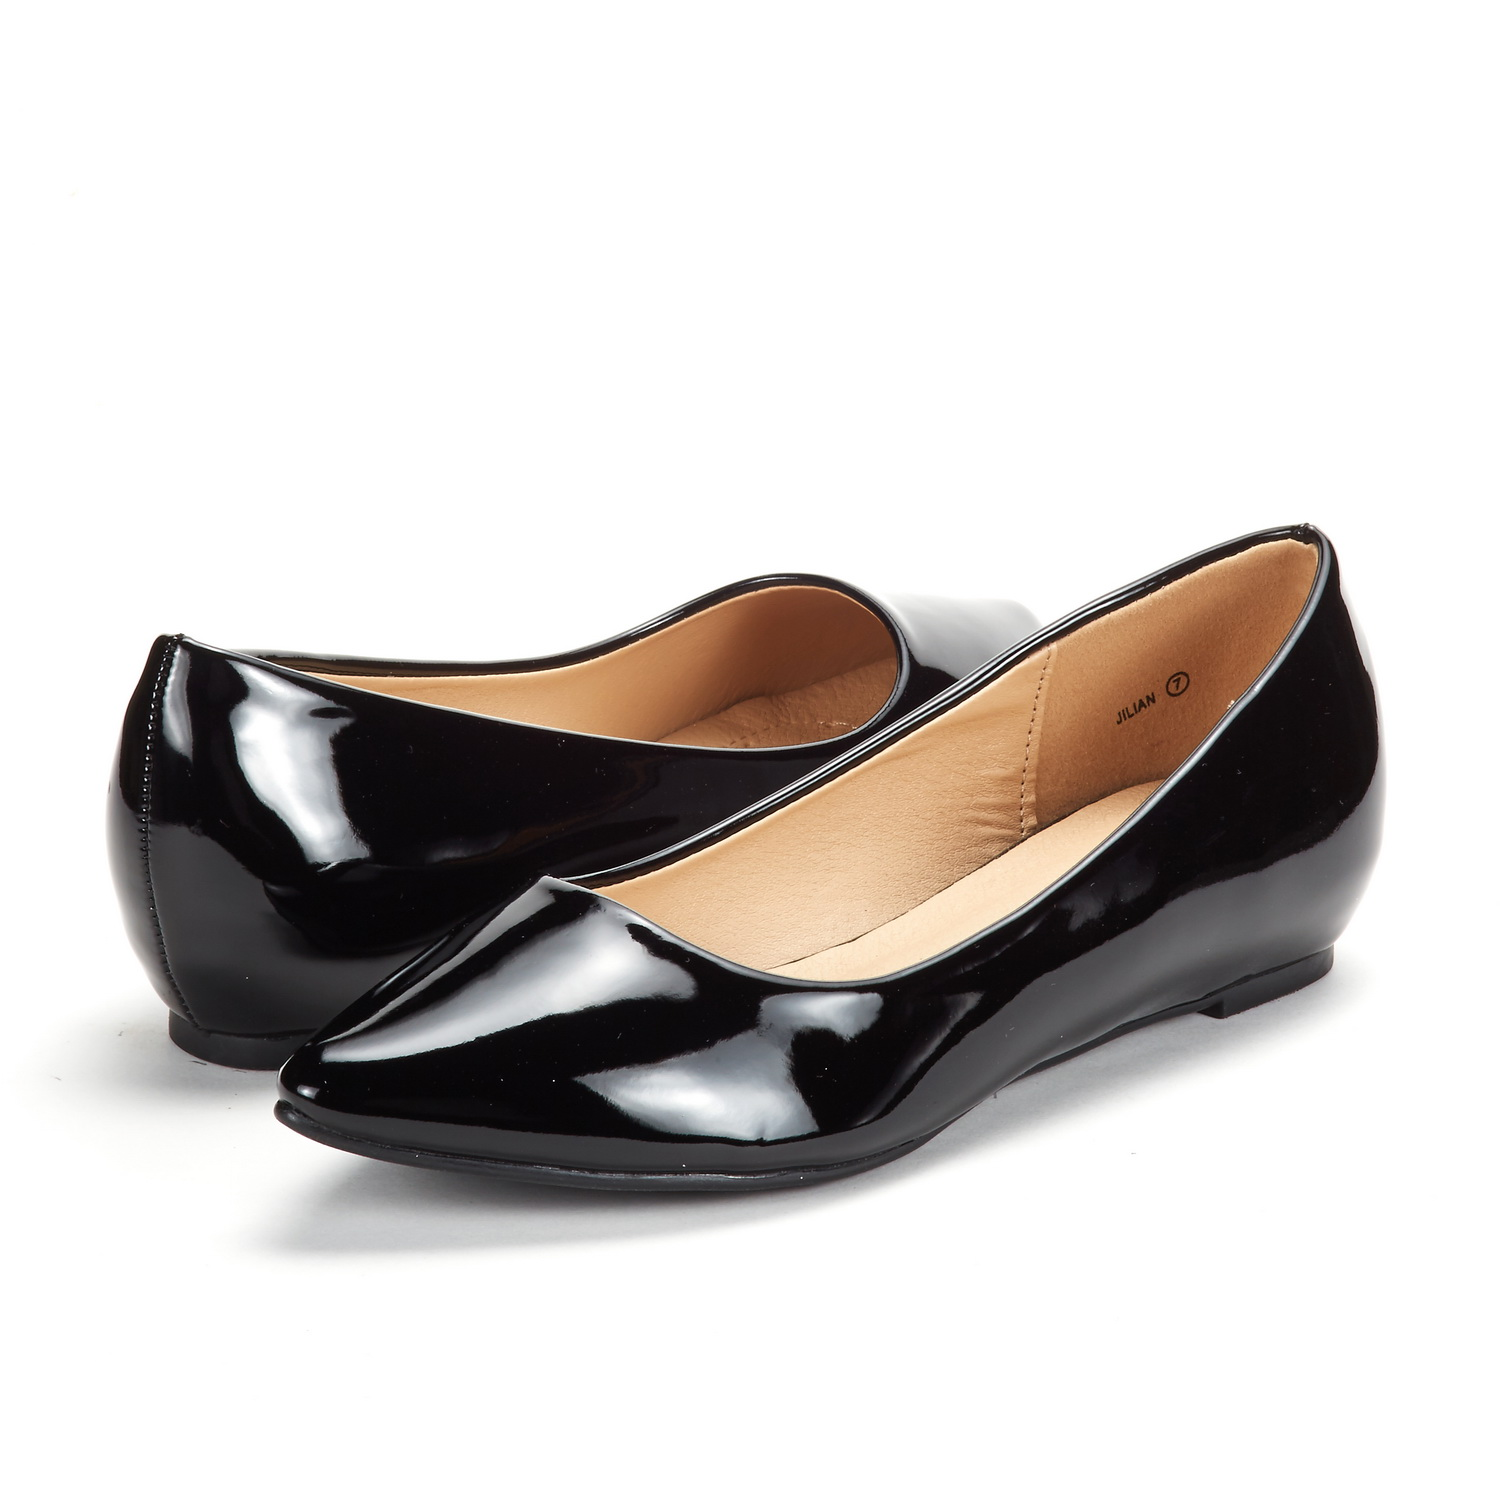 DREAM-PAIRS-Women-Low-Wedge-Flats-Ladies-Pointed-Toe-Slip-On-Comfort-Flat-Shoes thumbnail 43